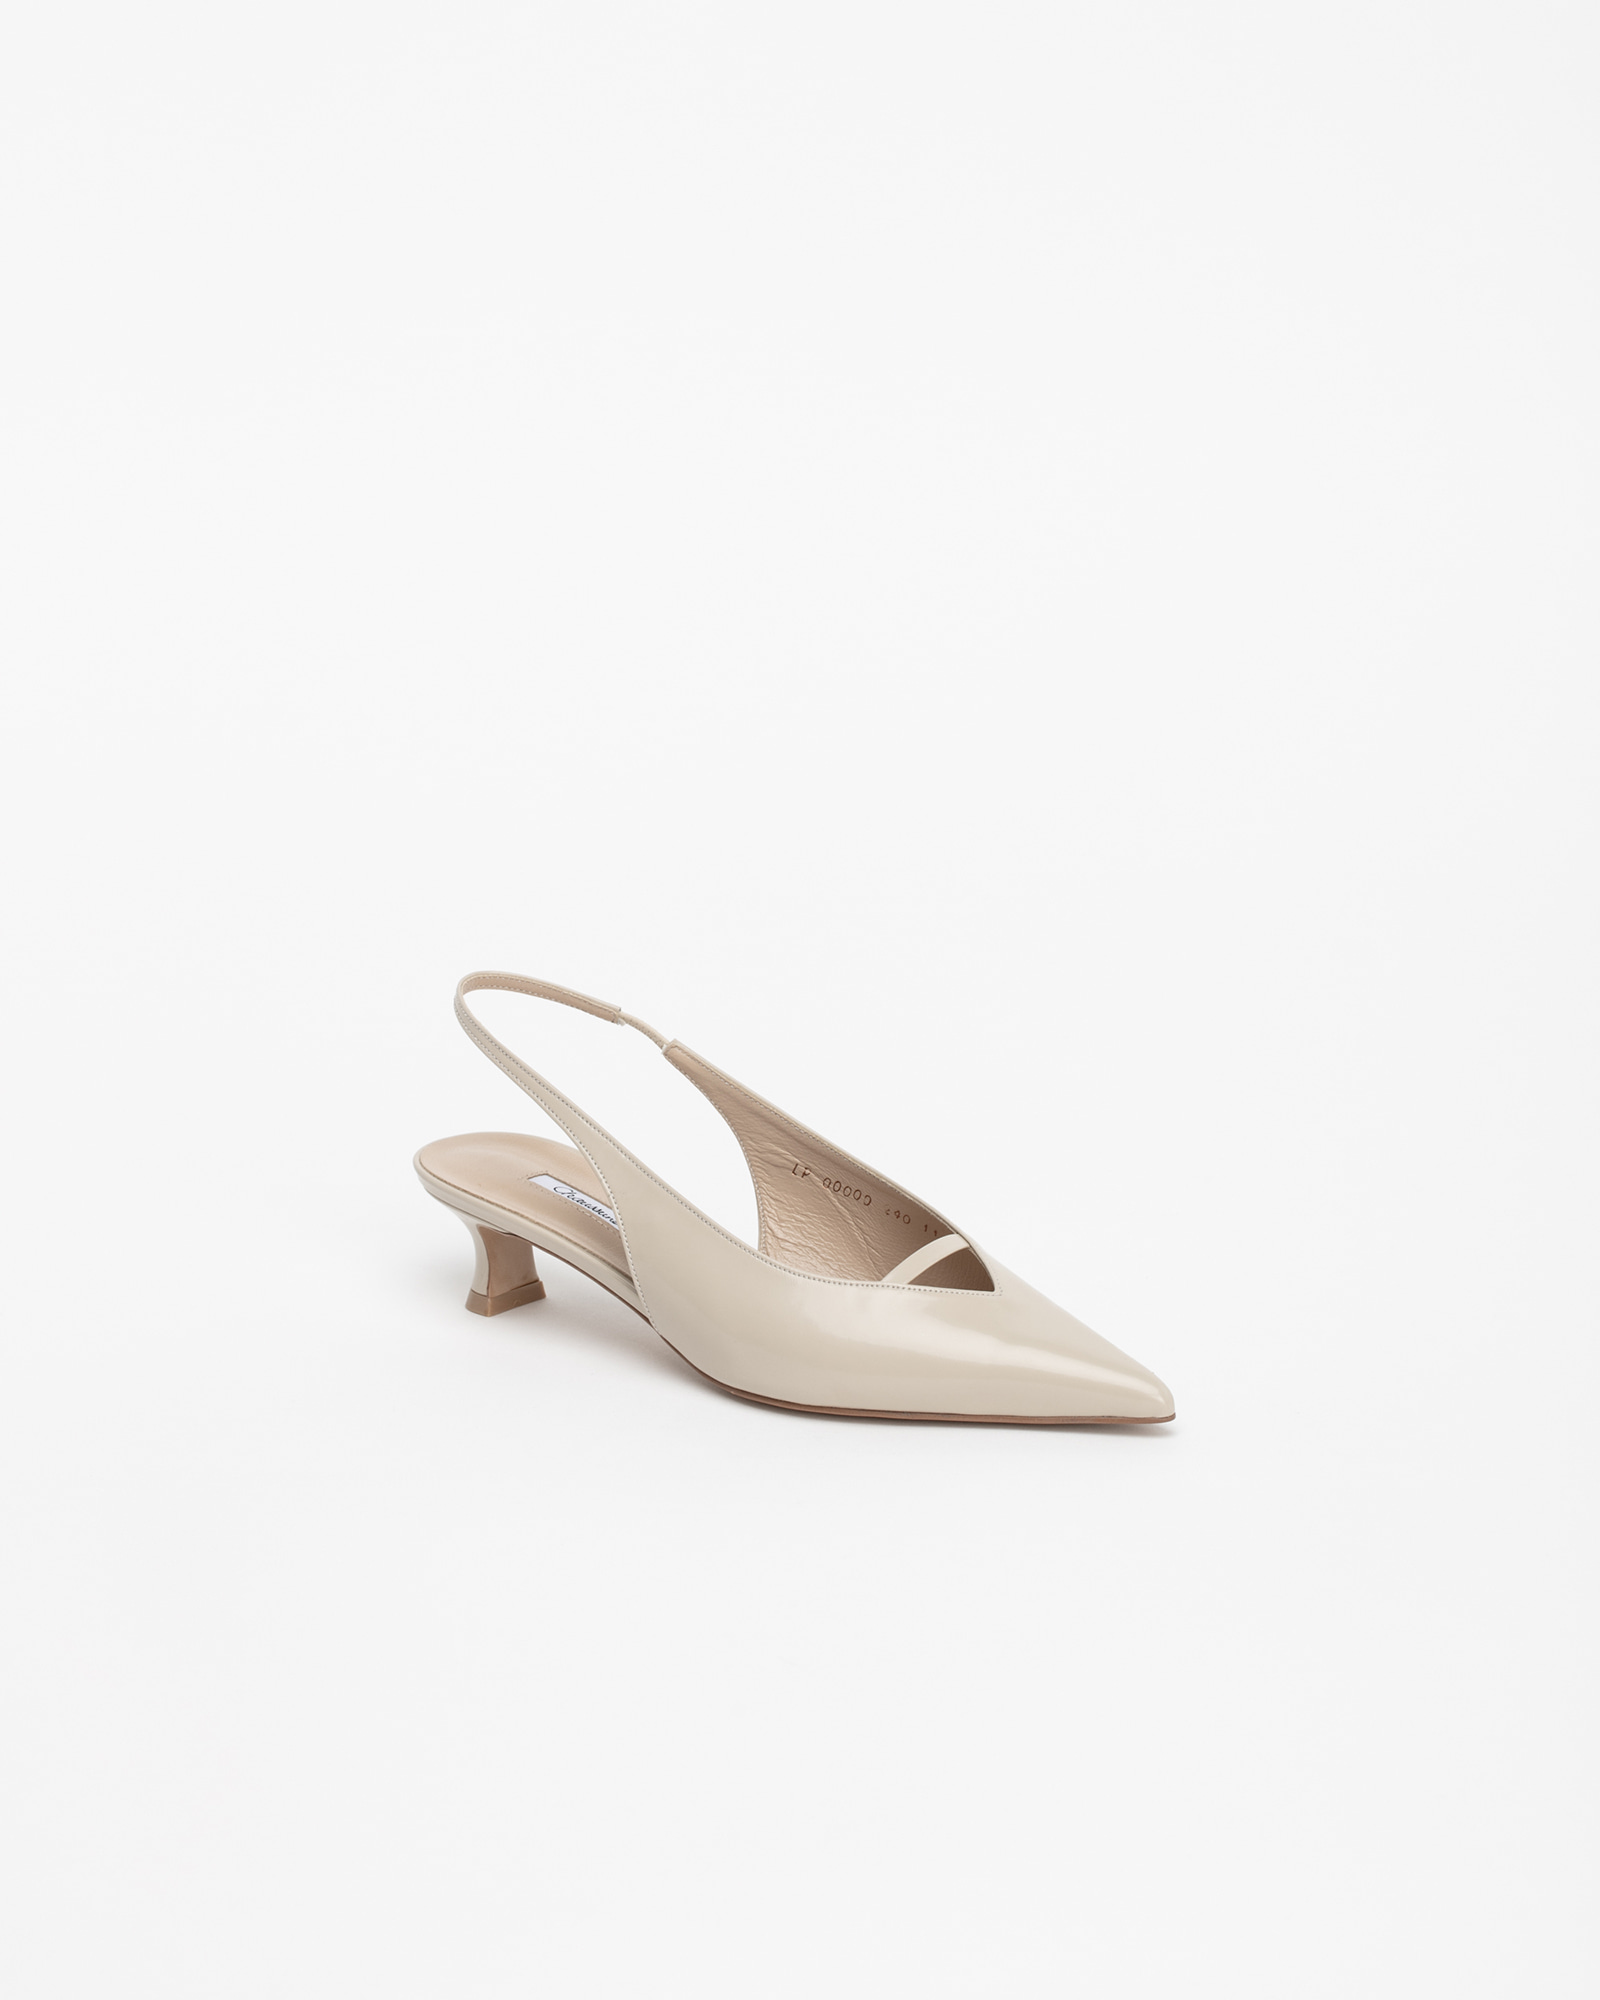 Pact Slingback Pumps in Ivory Box